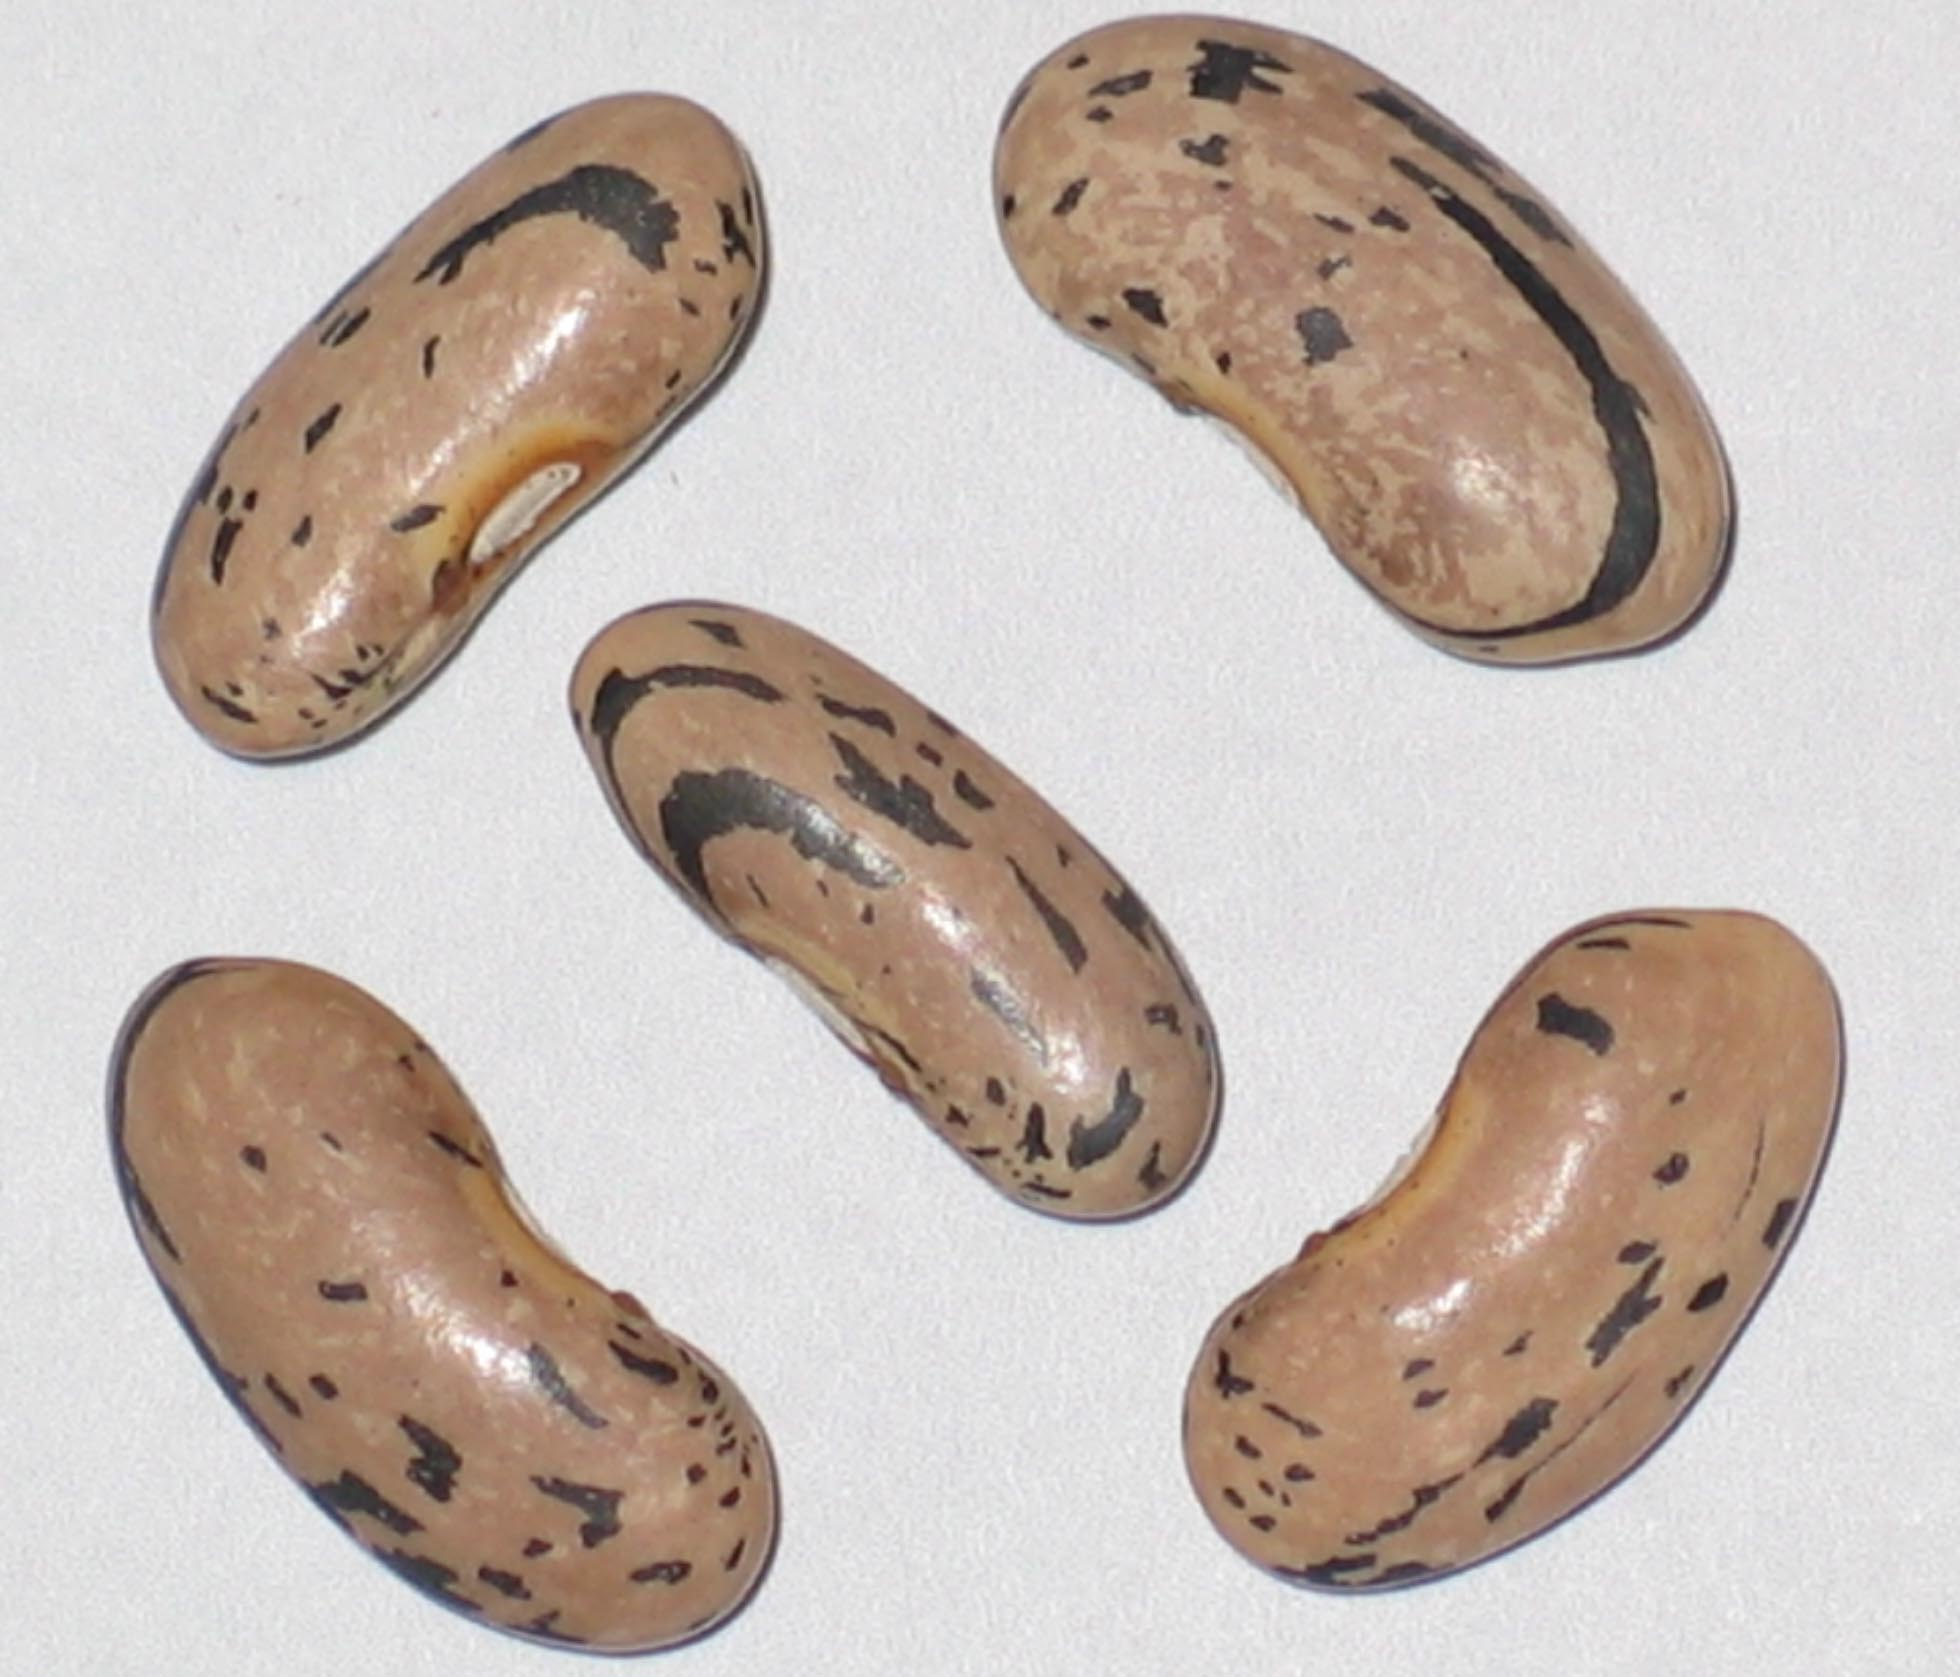 image of Oregon Giant beans